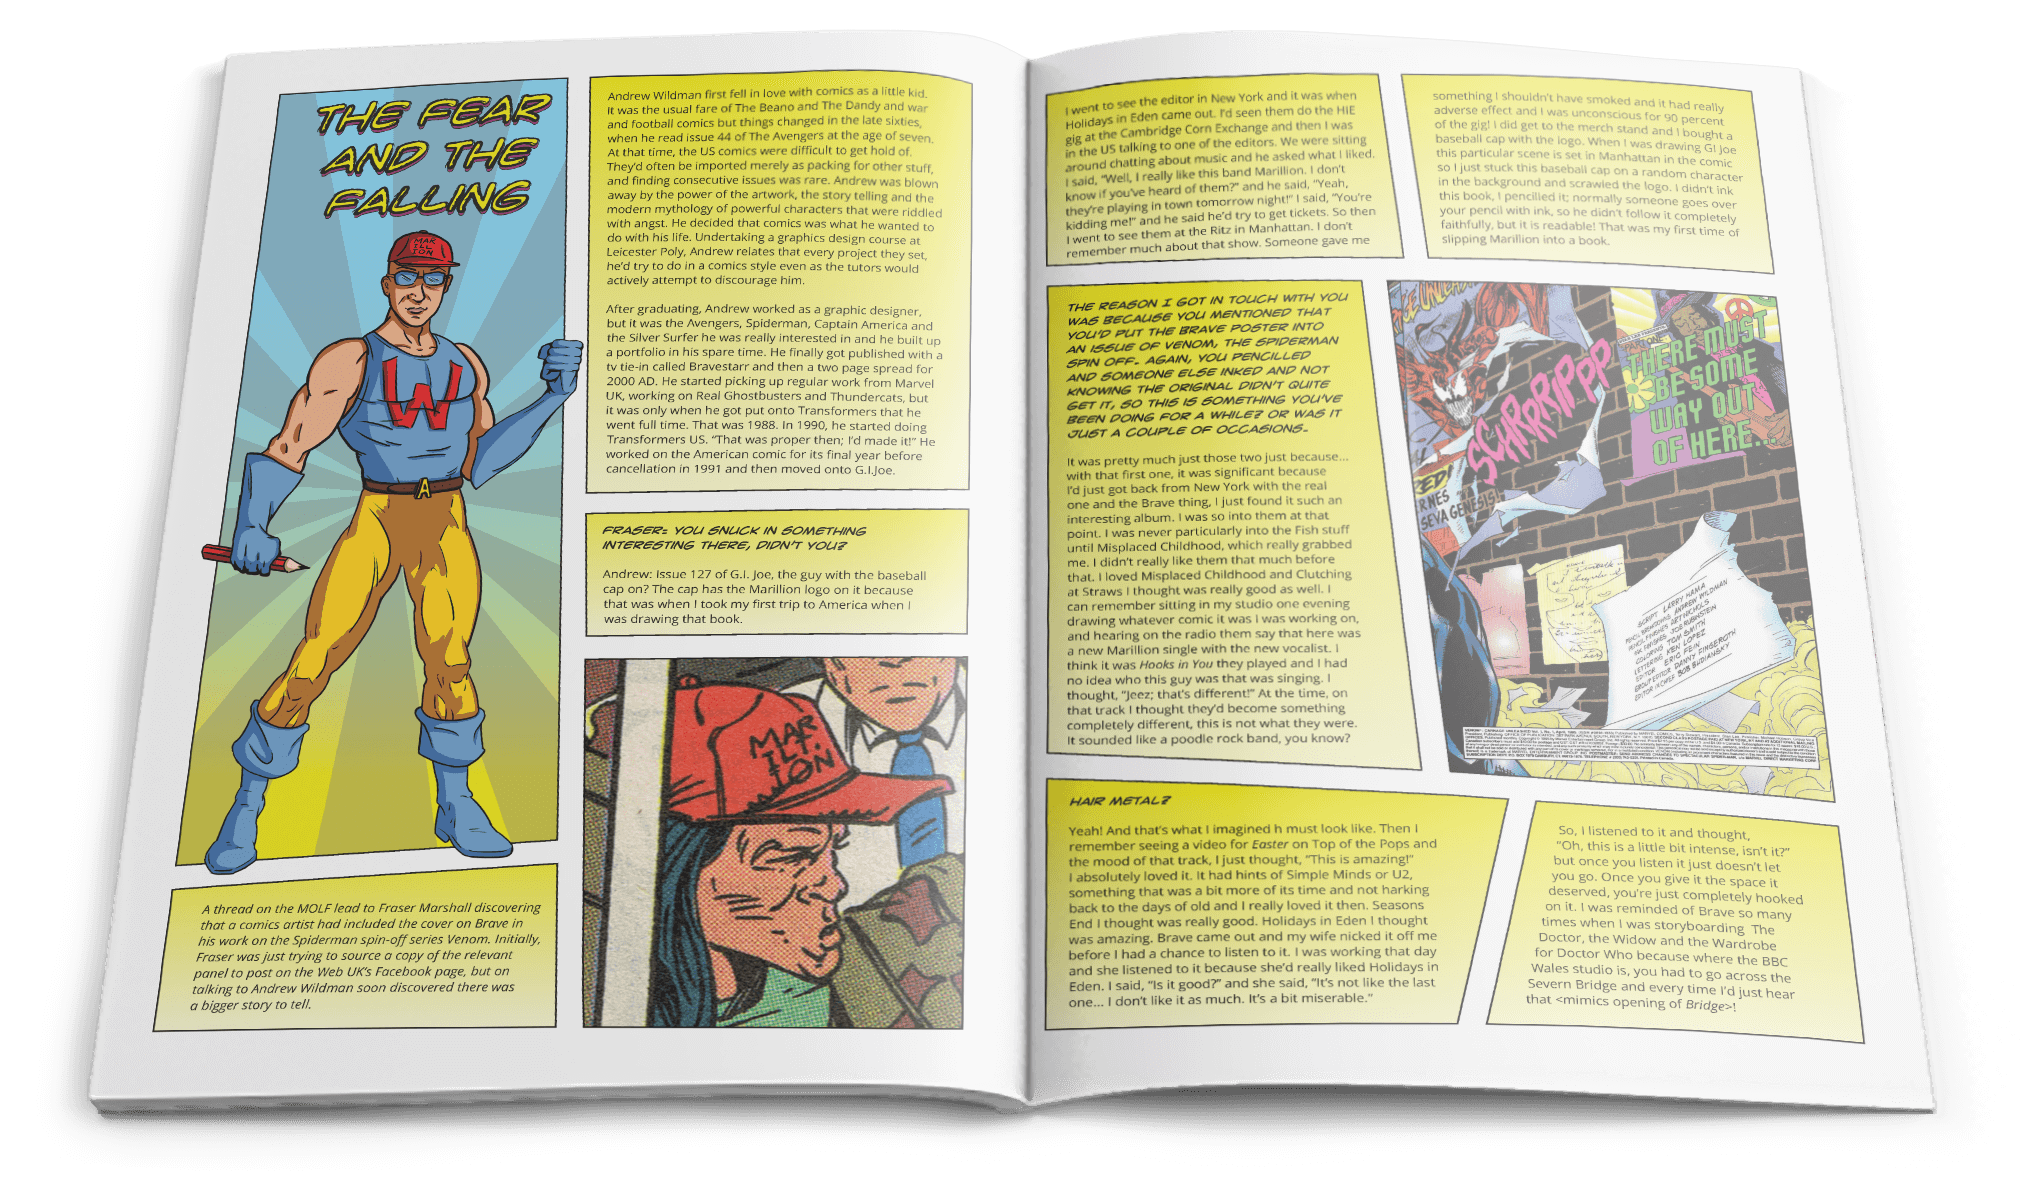 WebUK magazine spread showing a comic layout for an article about Andrew Wildman